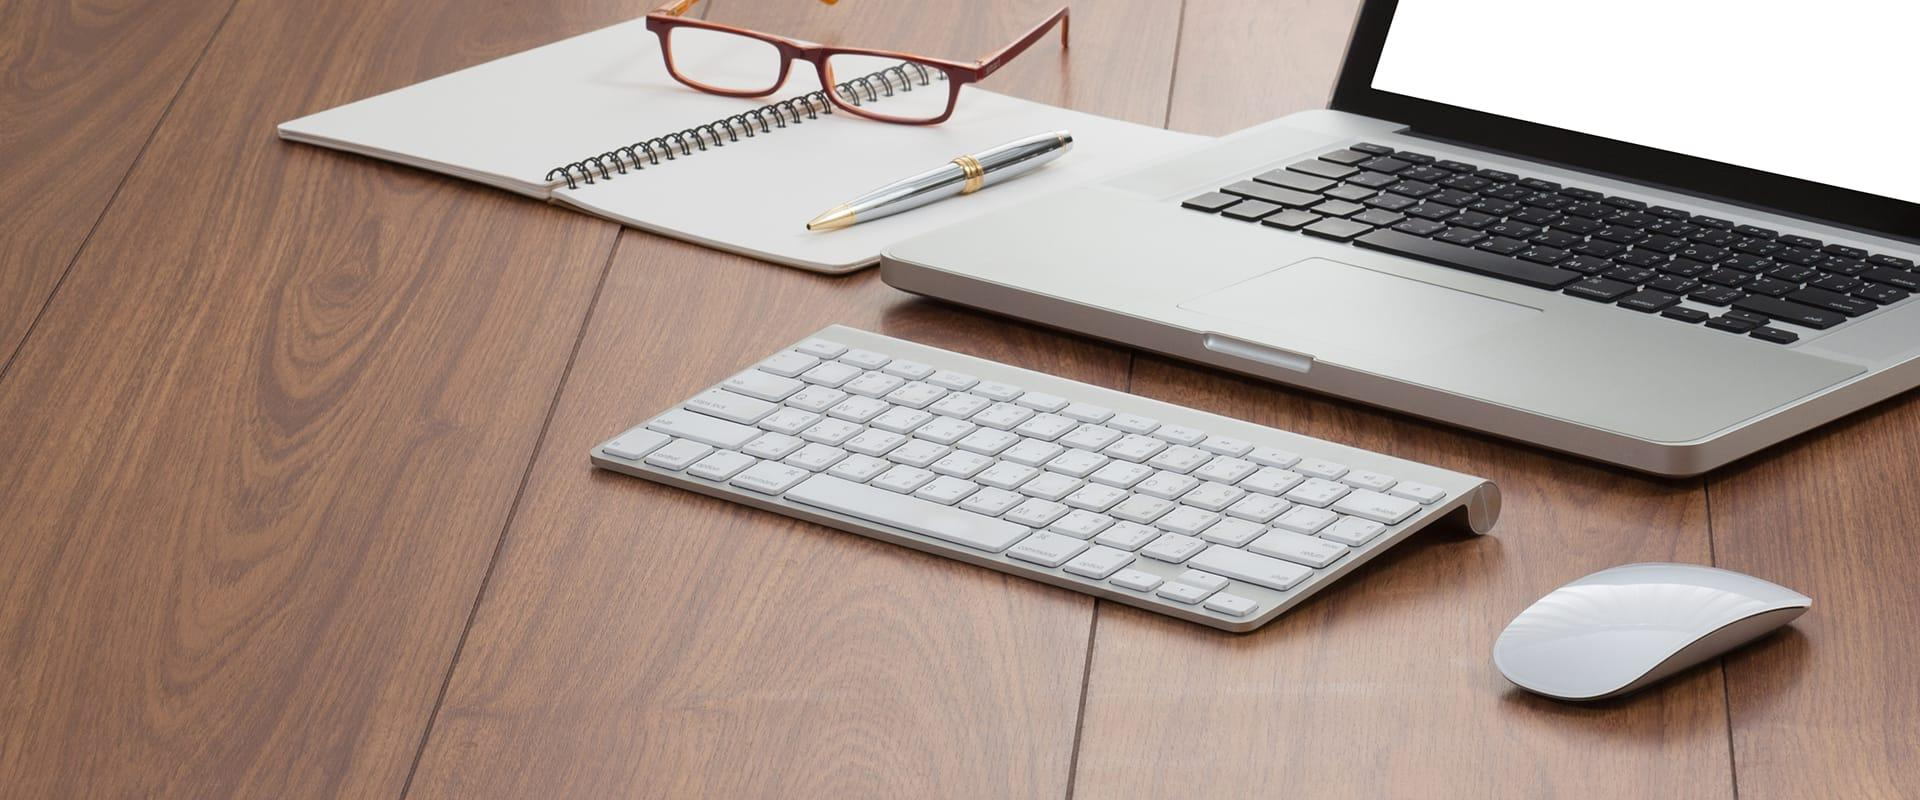 laptop with keyboard on desk